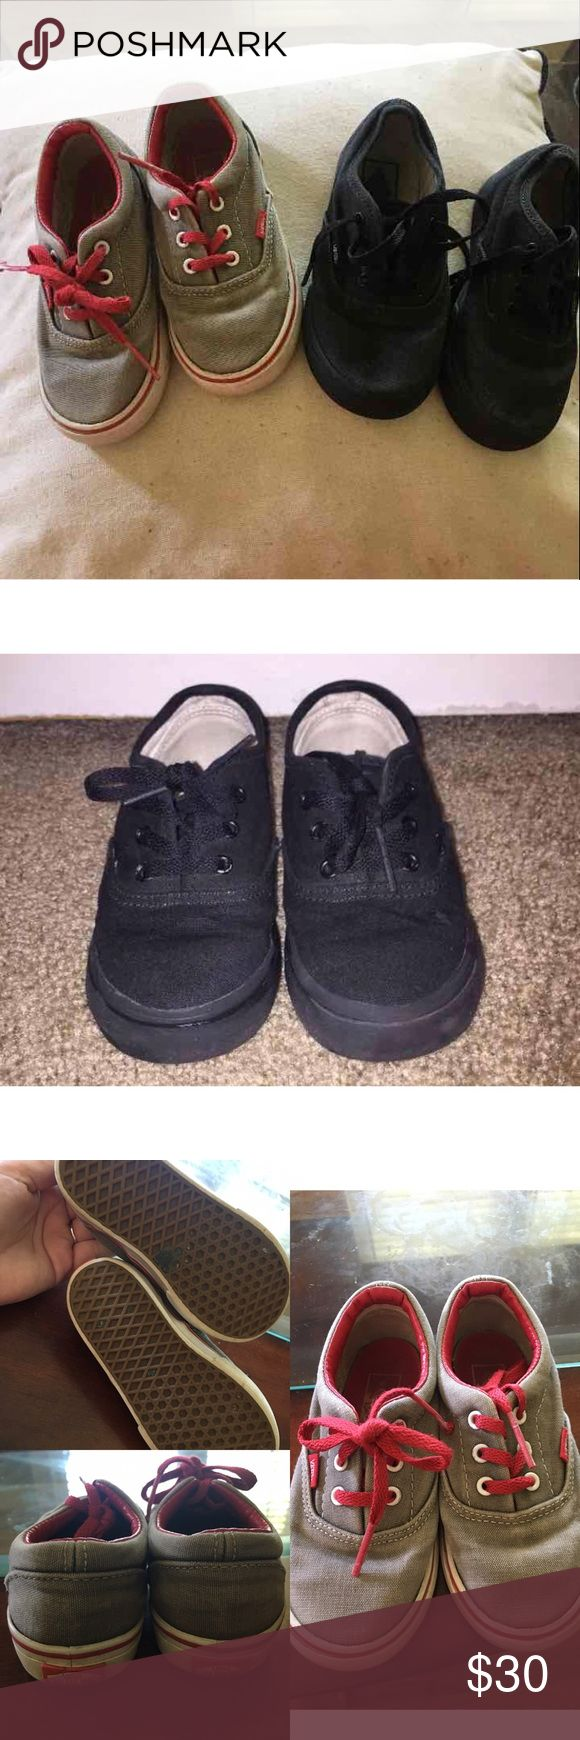 2 pairs of Vans I BUNDLE & OPEN TO OFFERS. Black Vans are in Great Condition, just normal wear of a 3 year old. The other pair are in an okay/good condition, they've had a lot of wear, but are still very cute and in great condition. Both are size 8. I do want to sale together, I'm pretty much throwing the gray pair in this bundle for free, considering I paid $50 for the black pair. Vans Shoes Sneakers